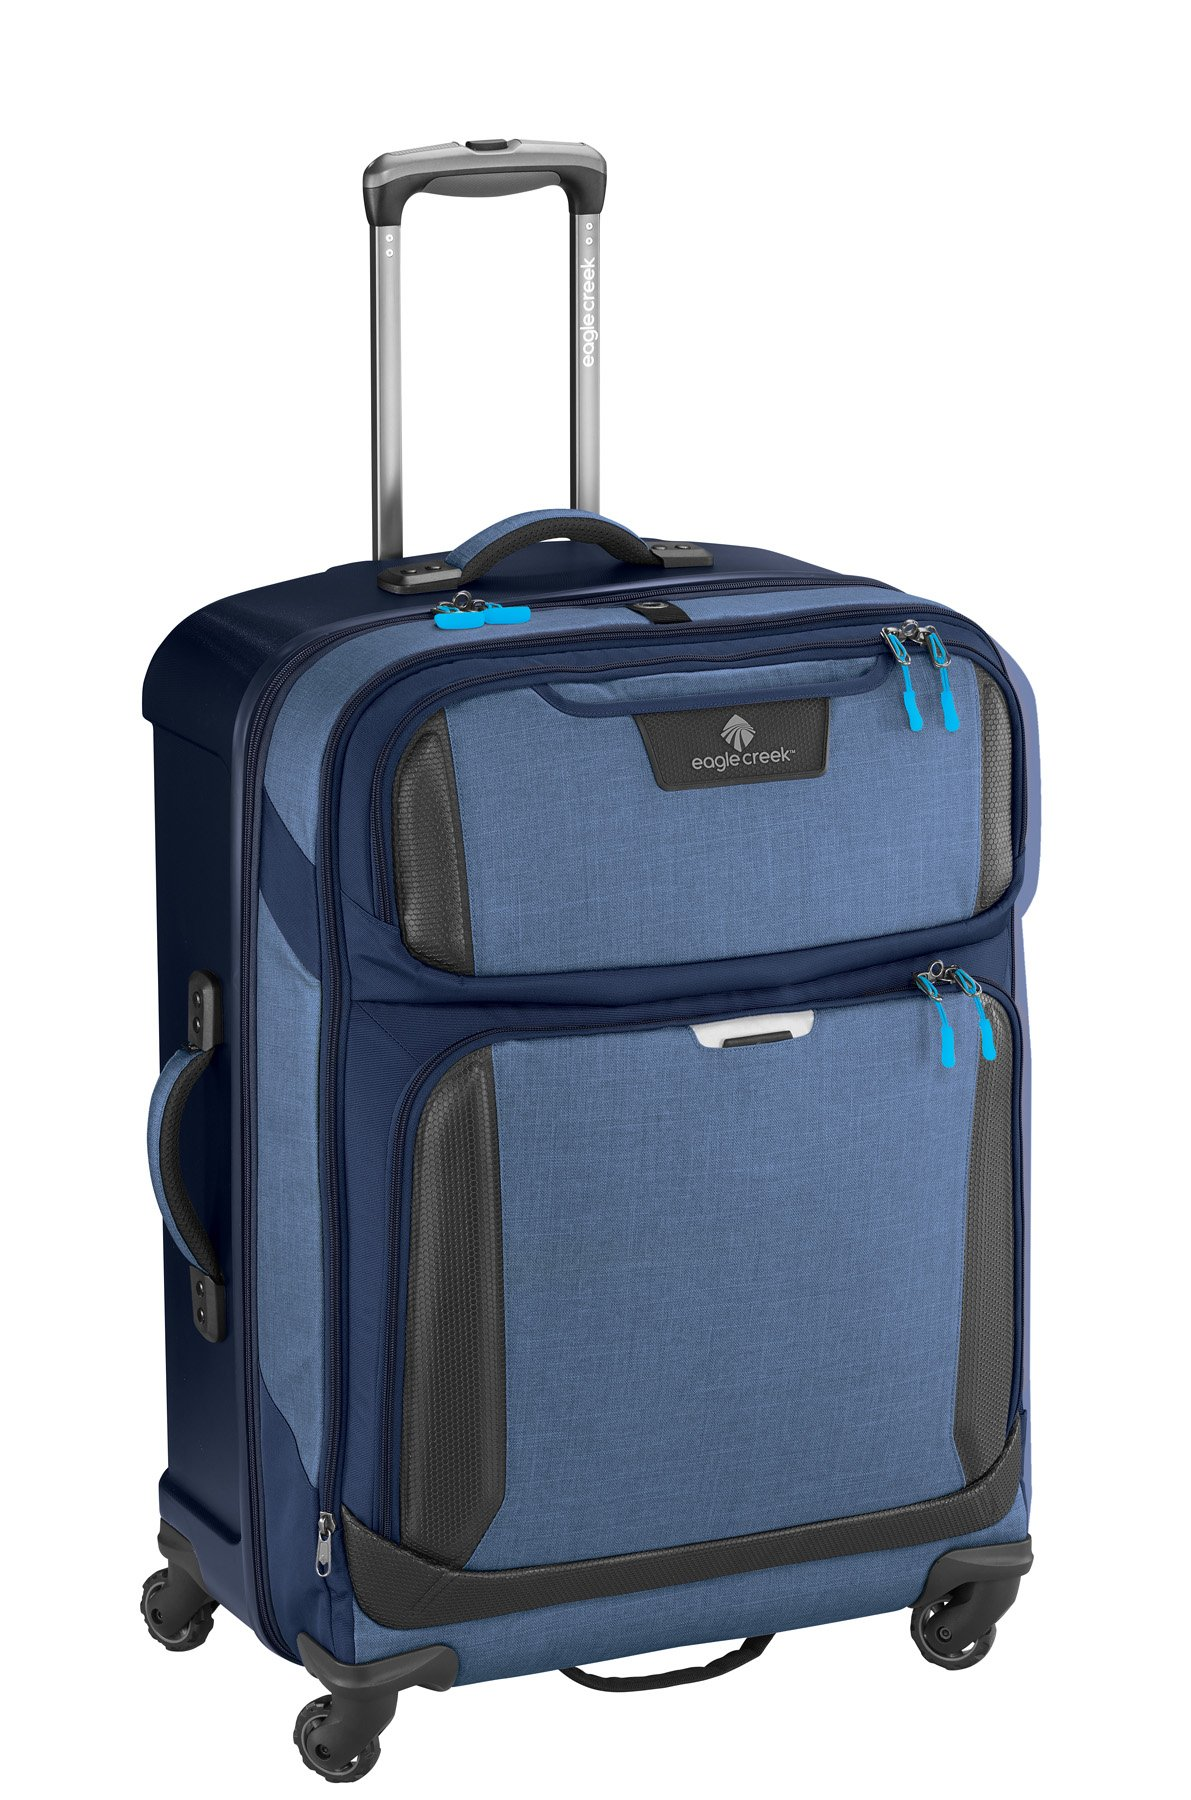 Eagle Creek Tarmac Awd 30 Inch Luggage, Slate Blue by Eagle Creek